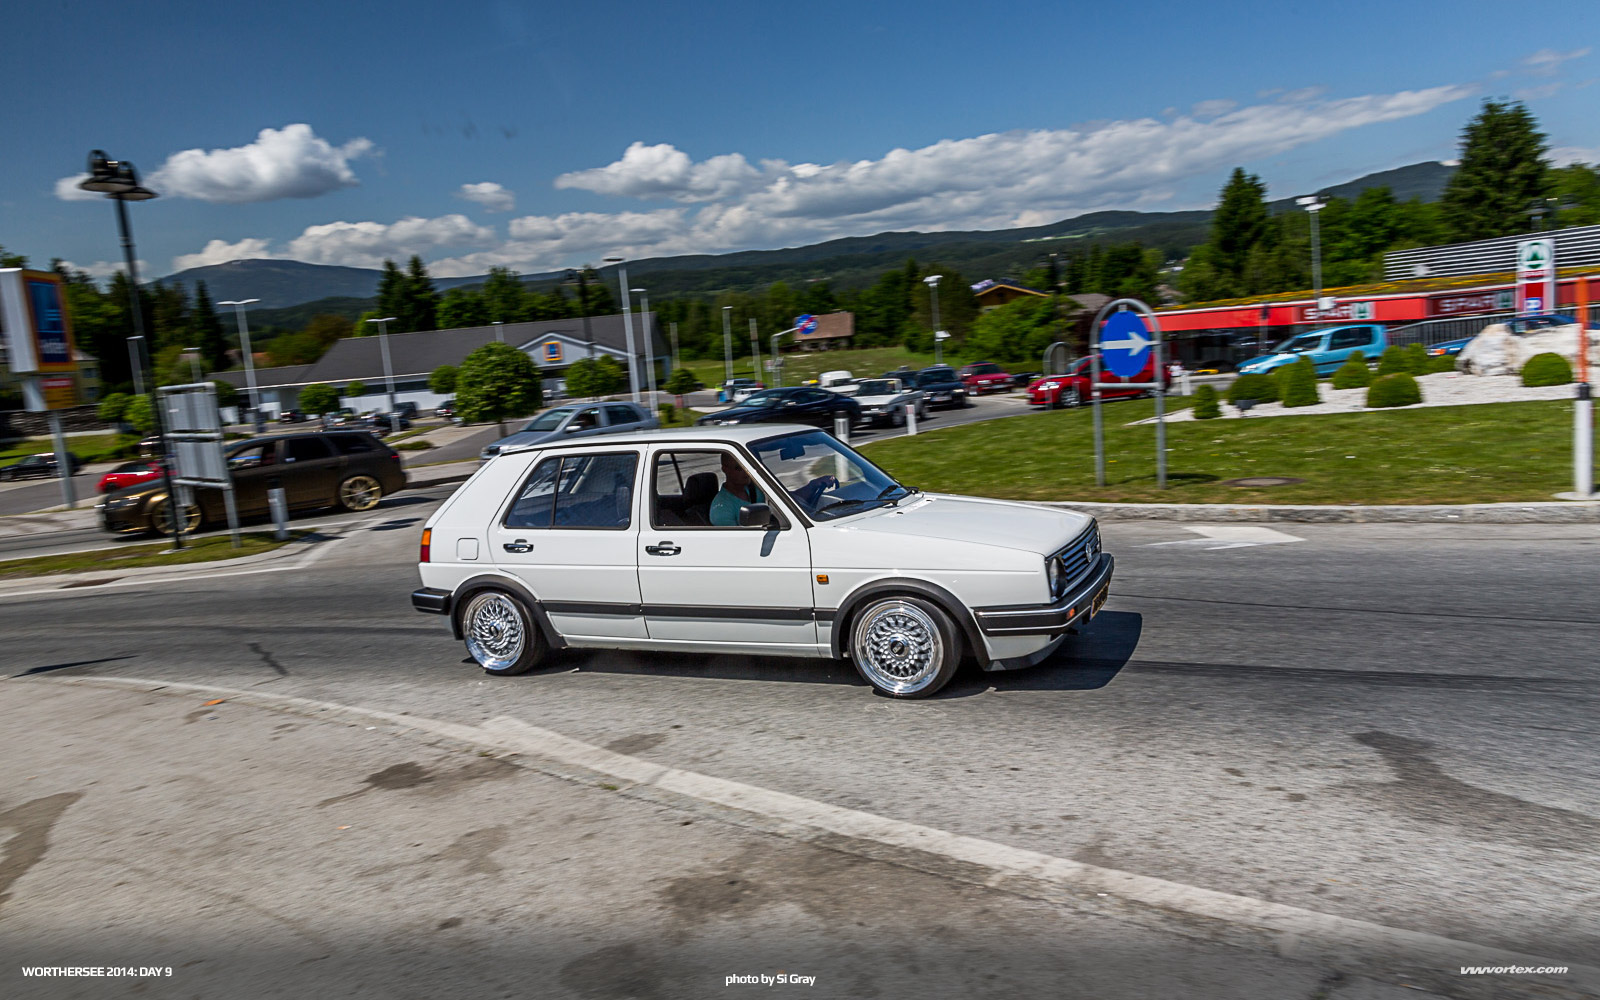 2014-Worthersee-Day-9-Si-Gray-399